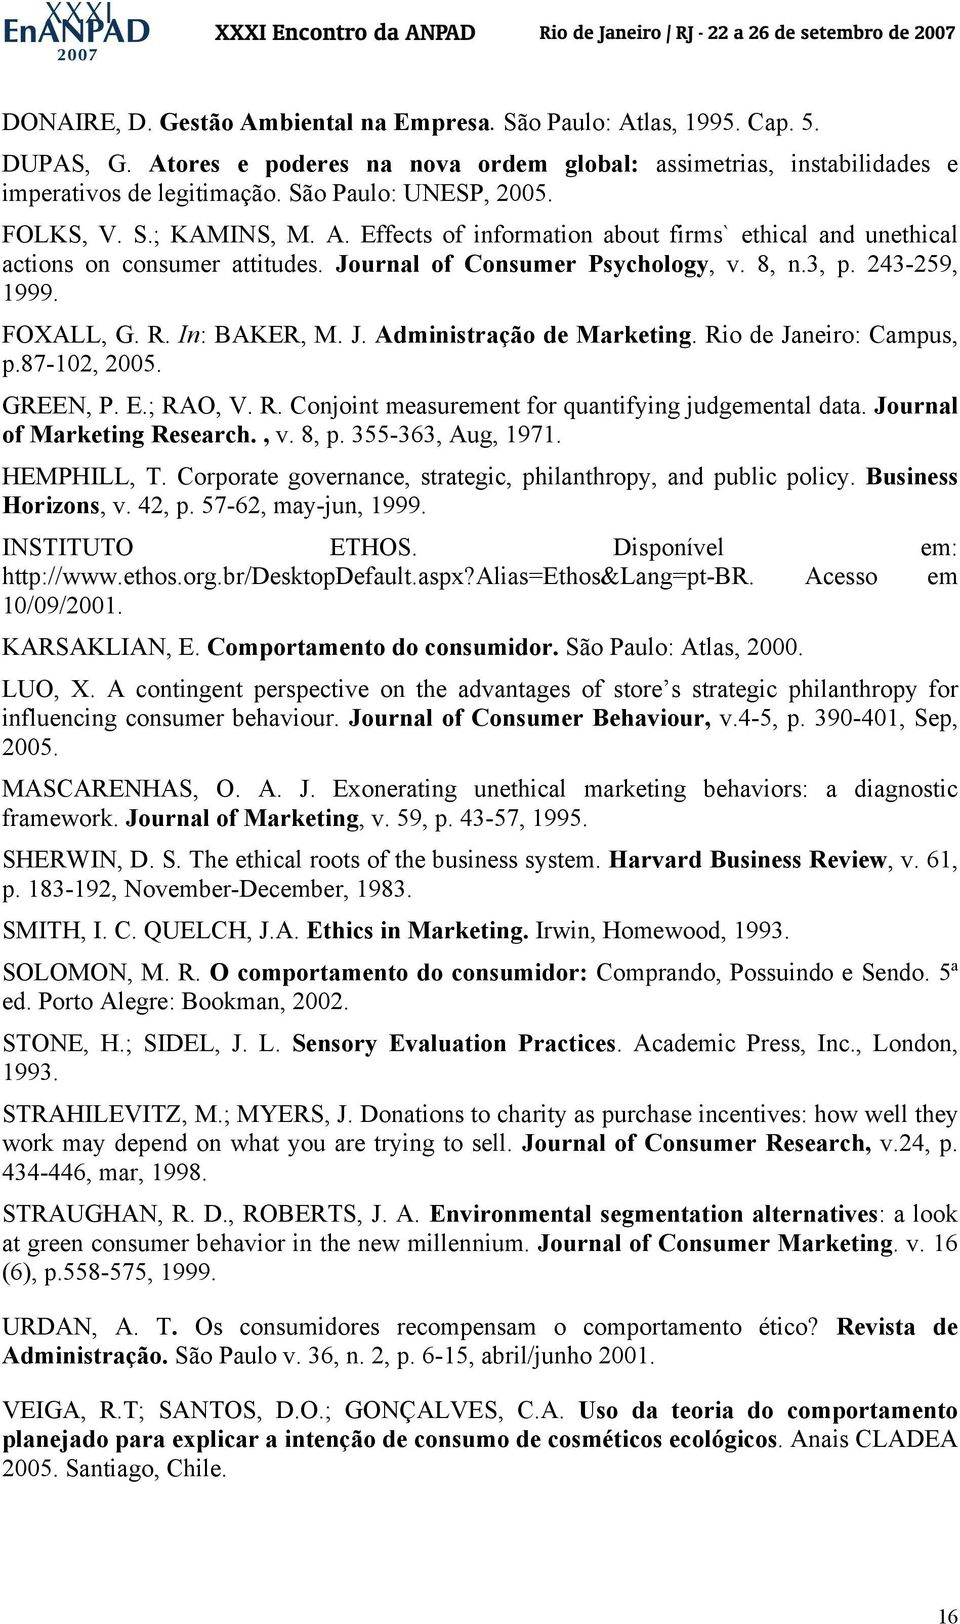 243-259, 1999. FOXALL, G. R. In: BAKER, M. J. Administração de Marketing. Rio de Janeiro: Campus, p.87-102, 2005. GREEN, P. E.; RAO, V. R. Conjoint measurement for quantifying judgemental data.